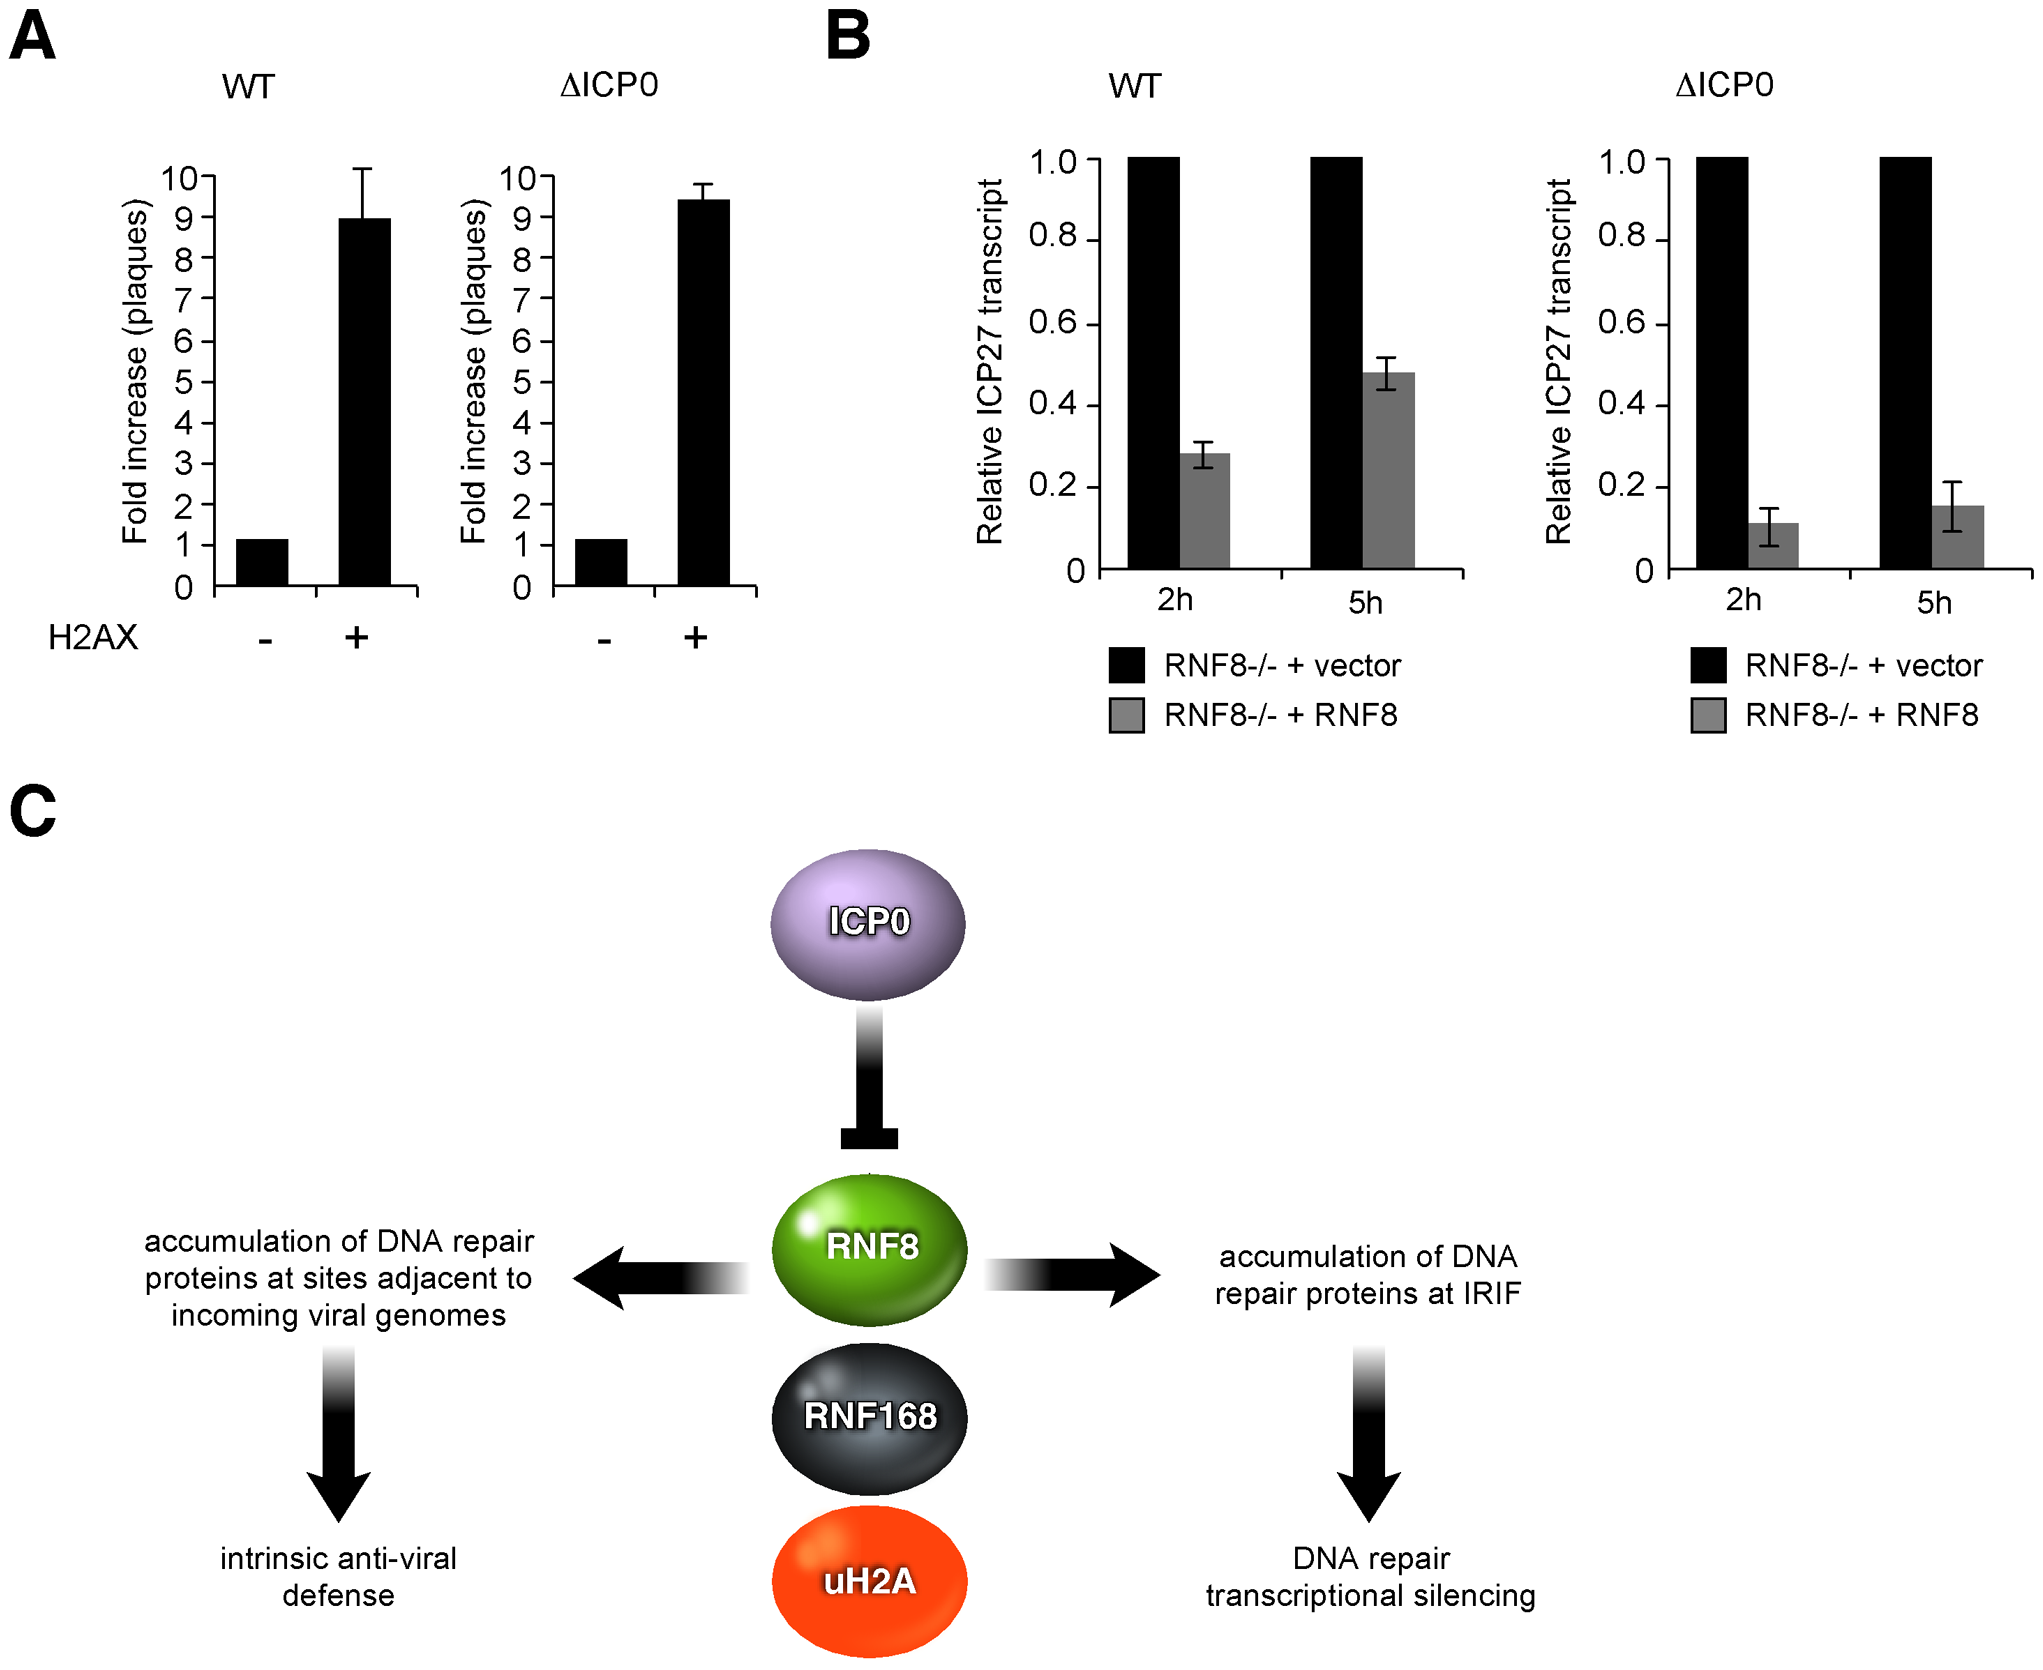 H2AX is beneficial for HSV-1 replication while RNF8 represses viral genomes.